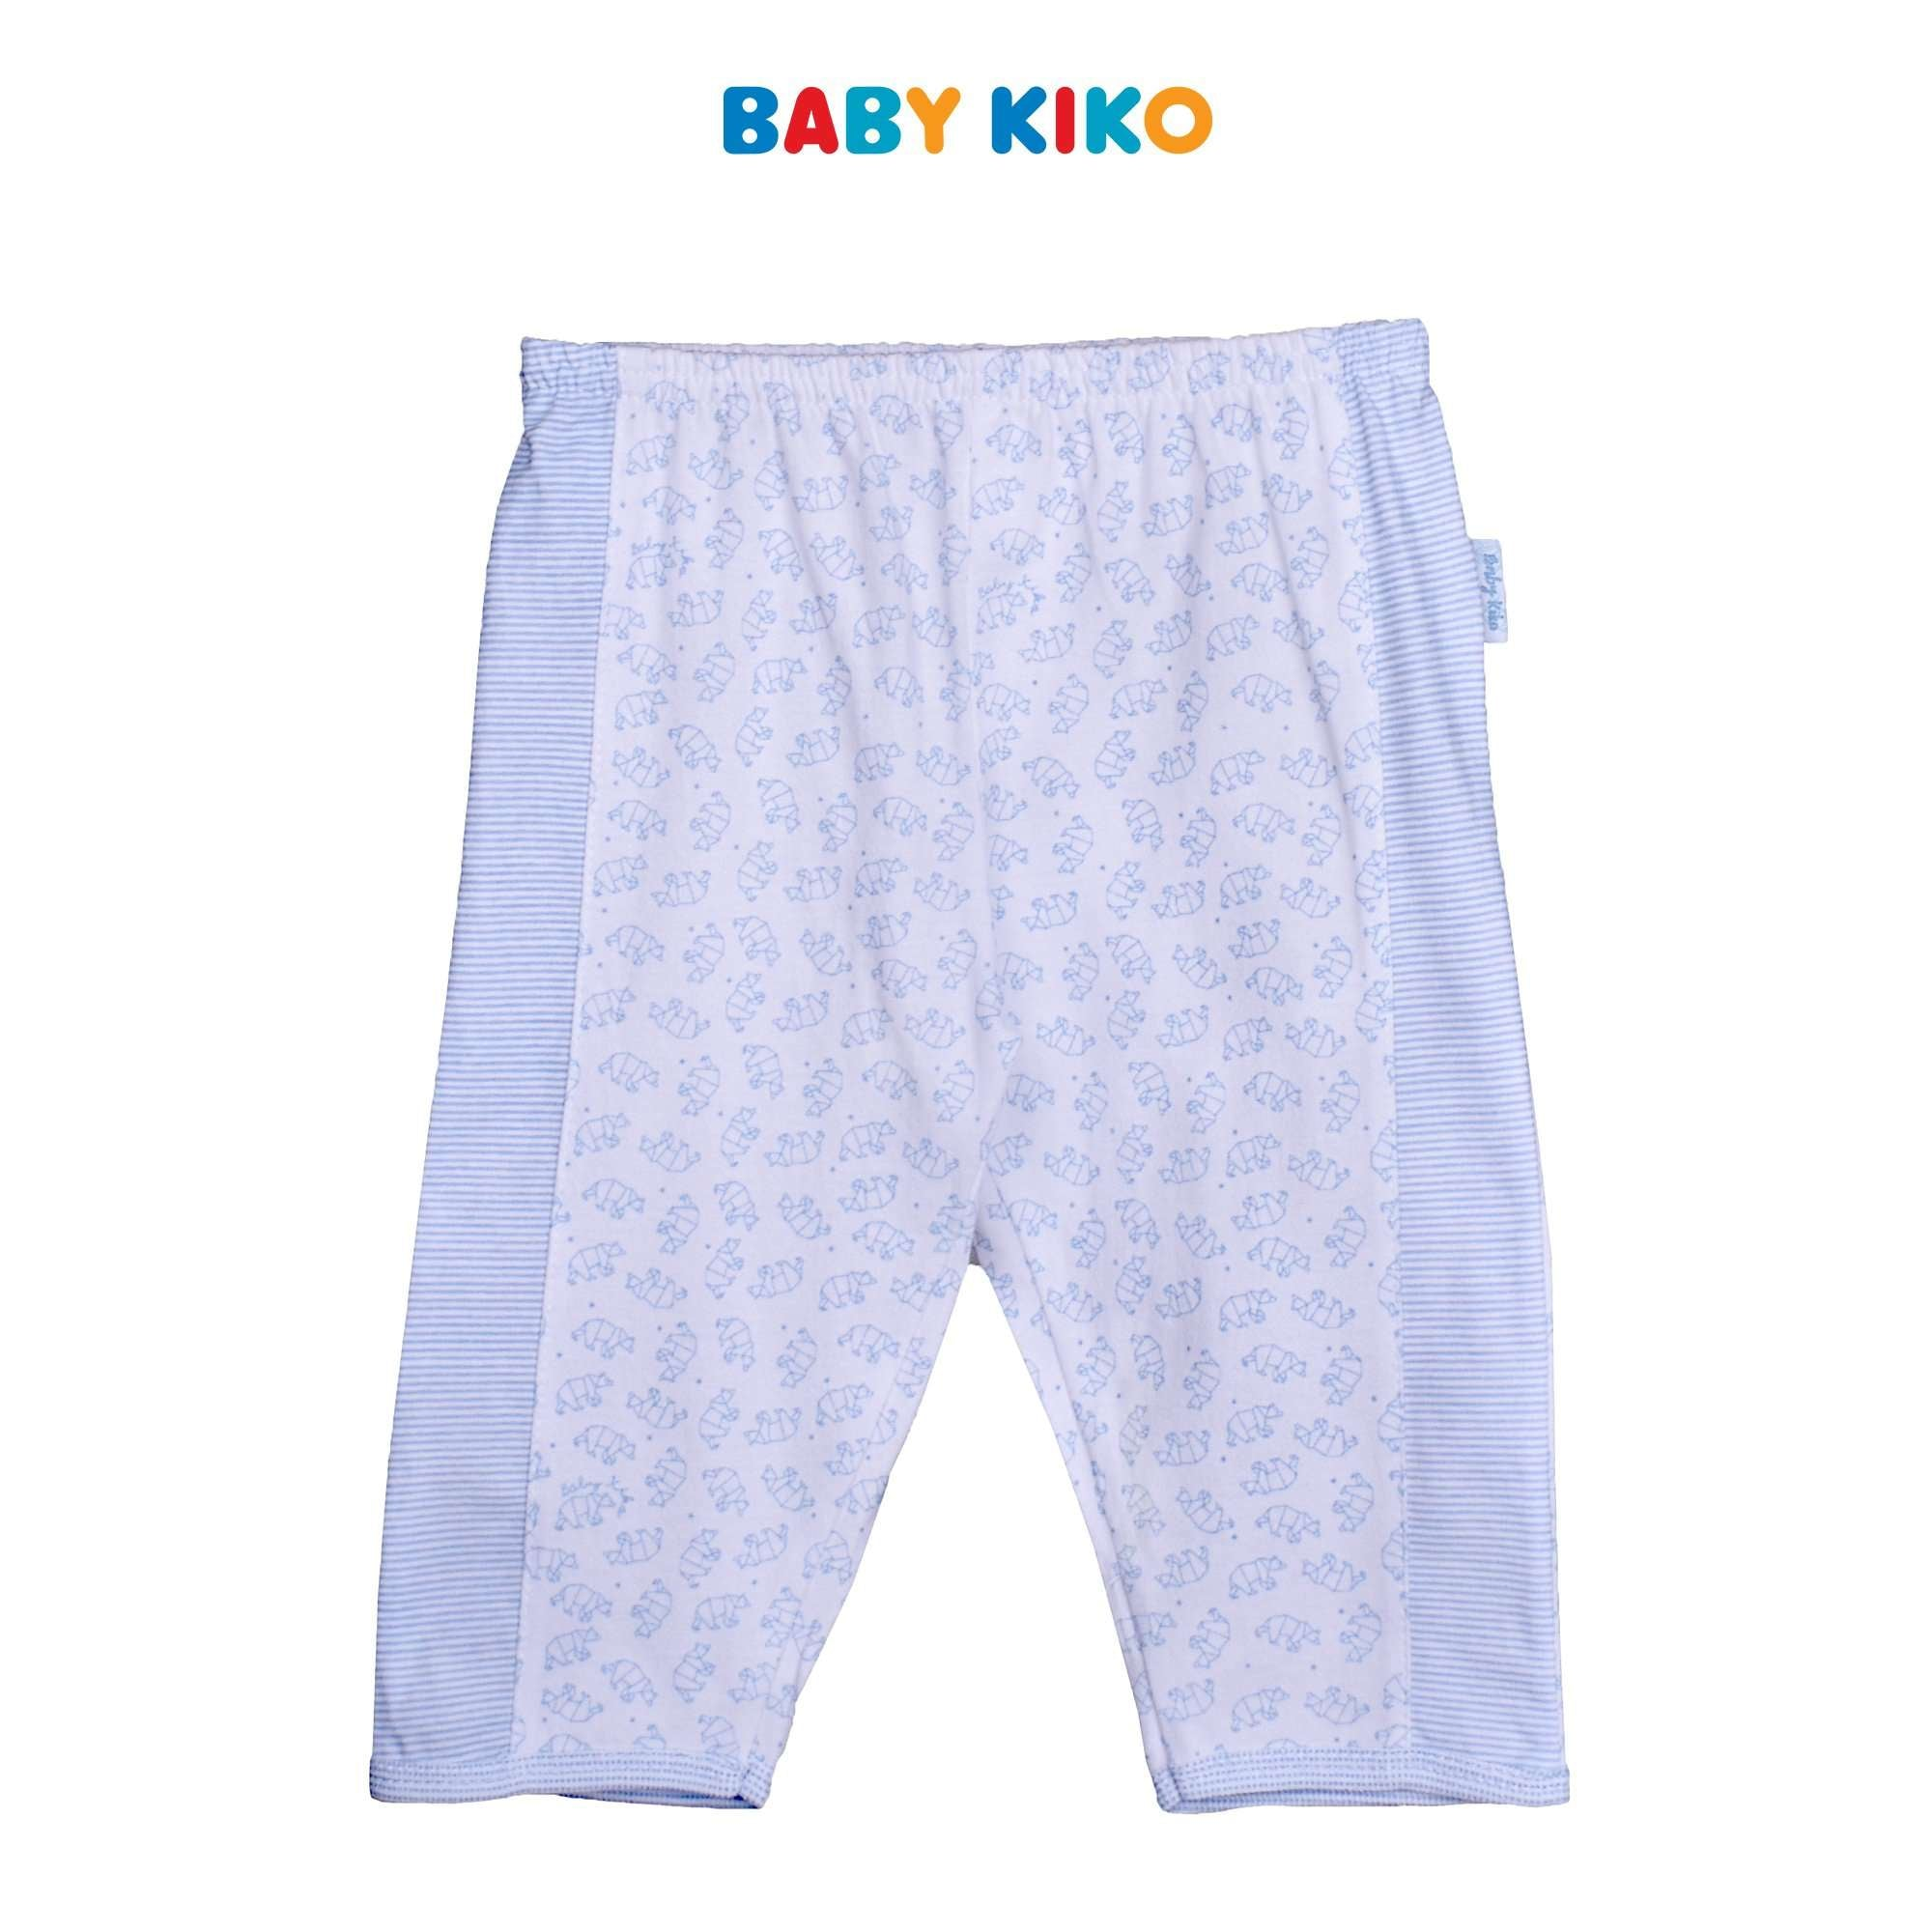 Baby KIKO Baby Boy Long Pants-White 310182-281 : Buy Baby KIKO online at CMG.MY